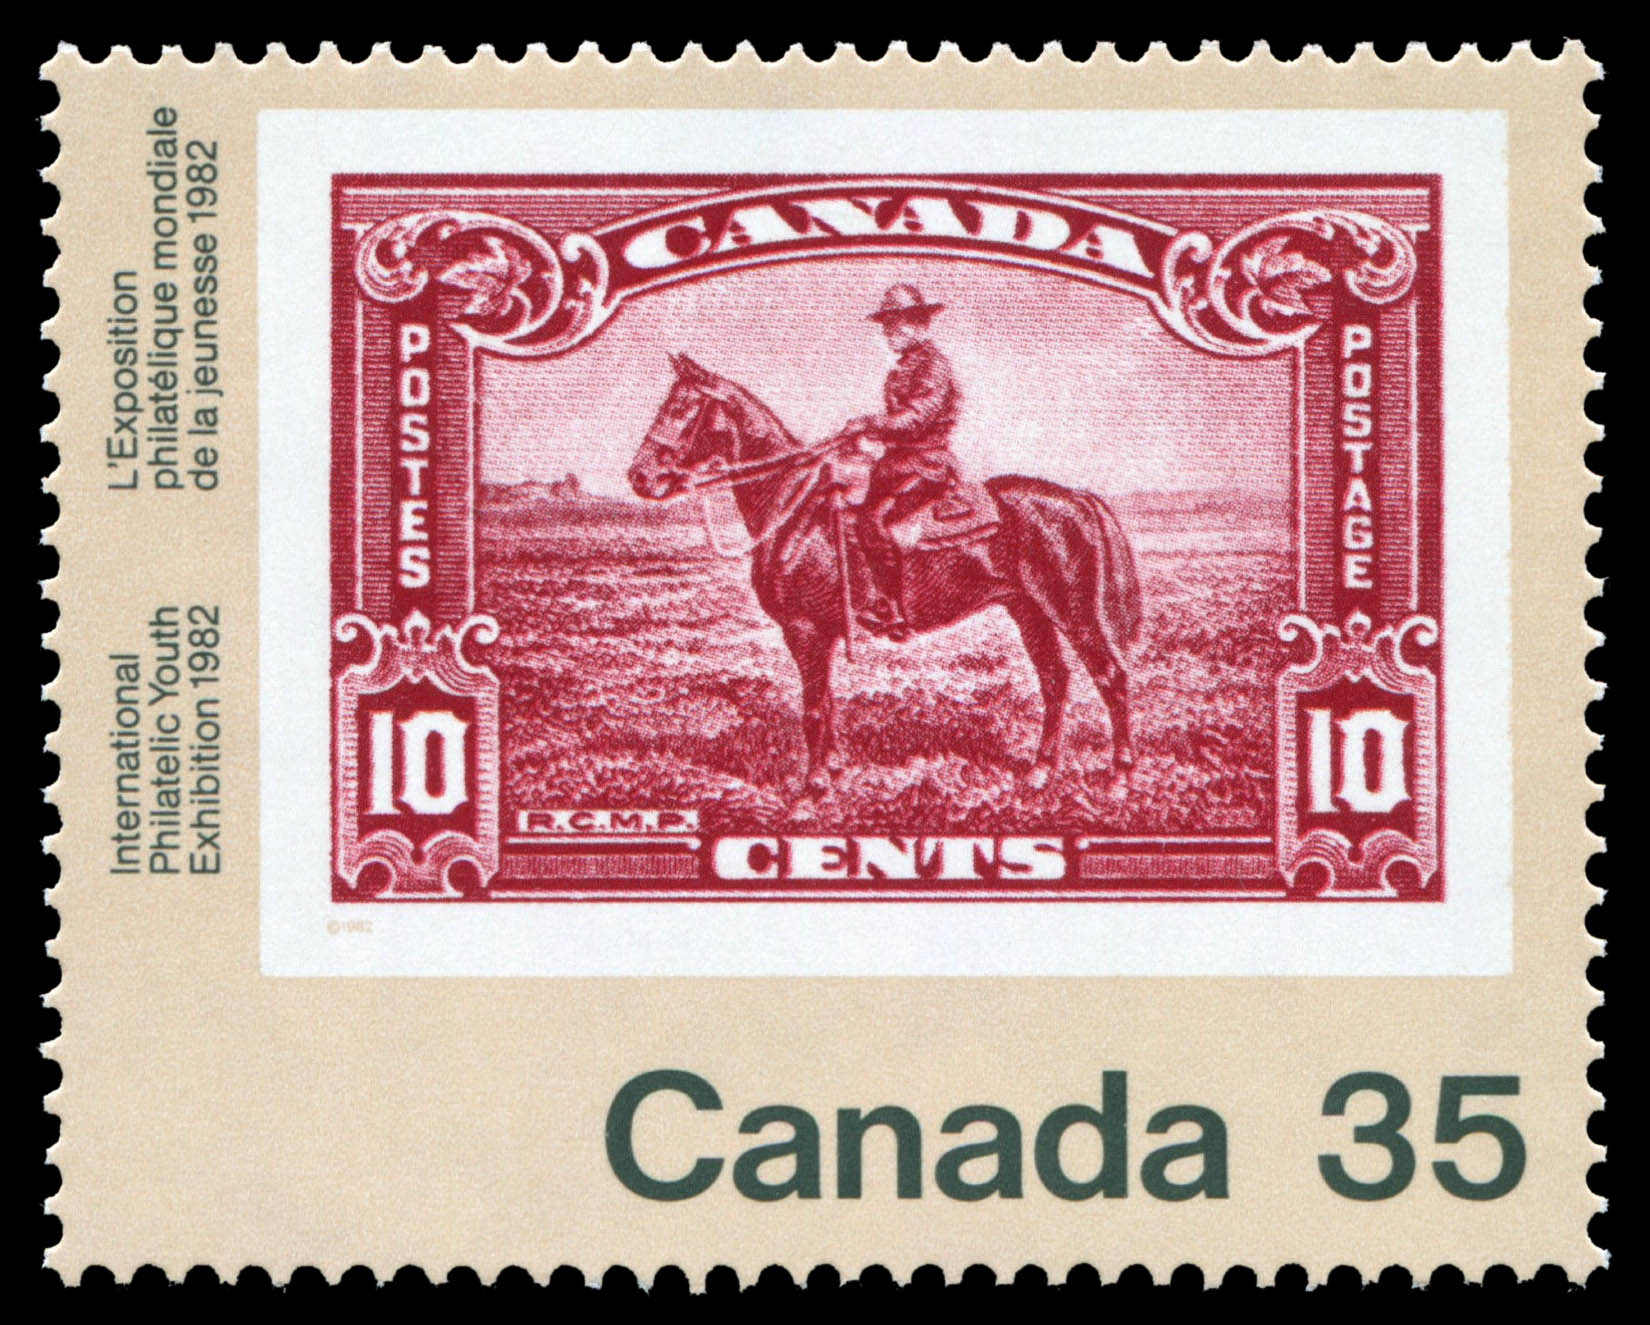 Mountie, 1935 Canada Postage Stamp | International Philatelic Youth Exhibition